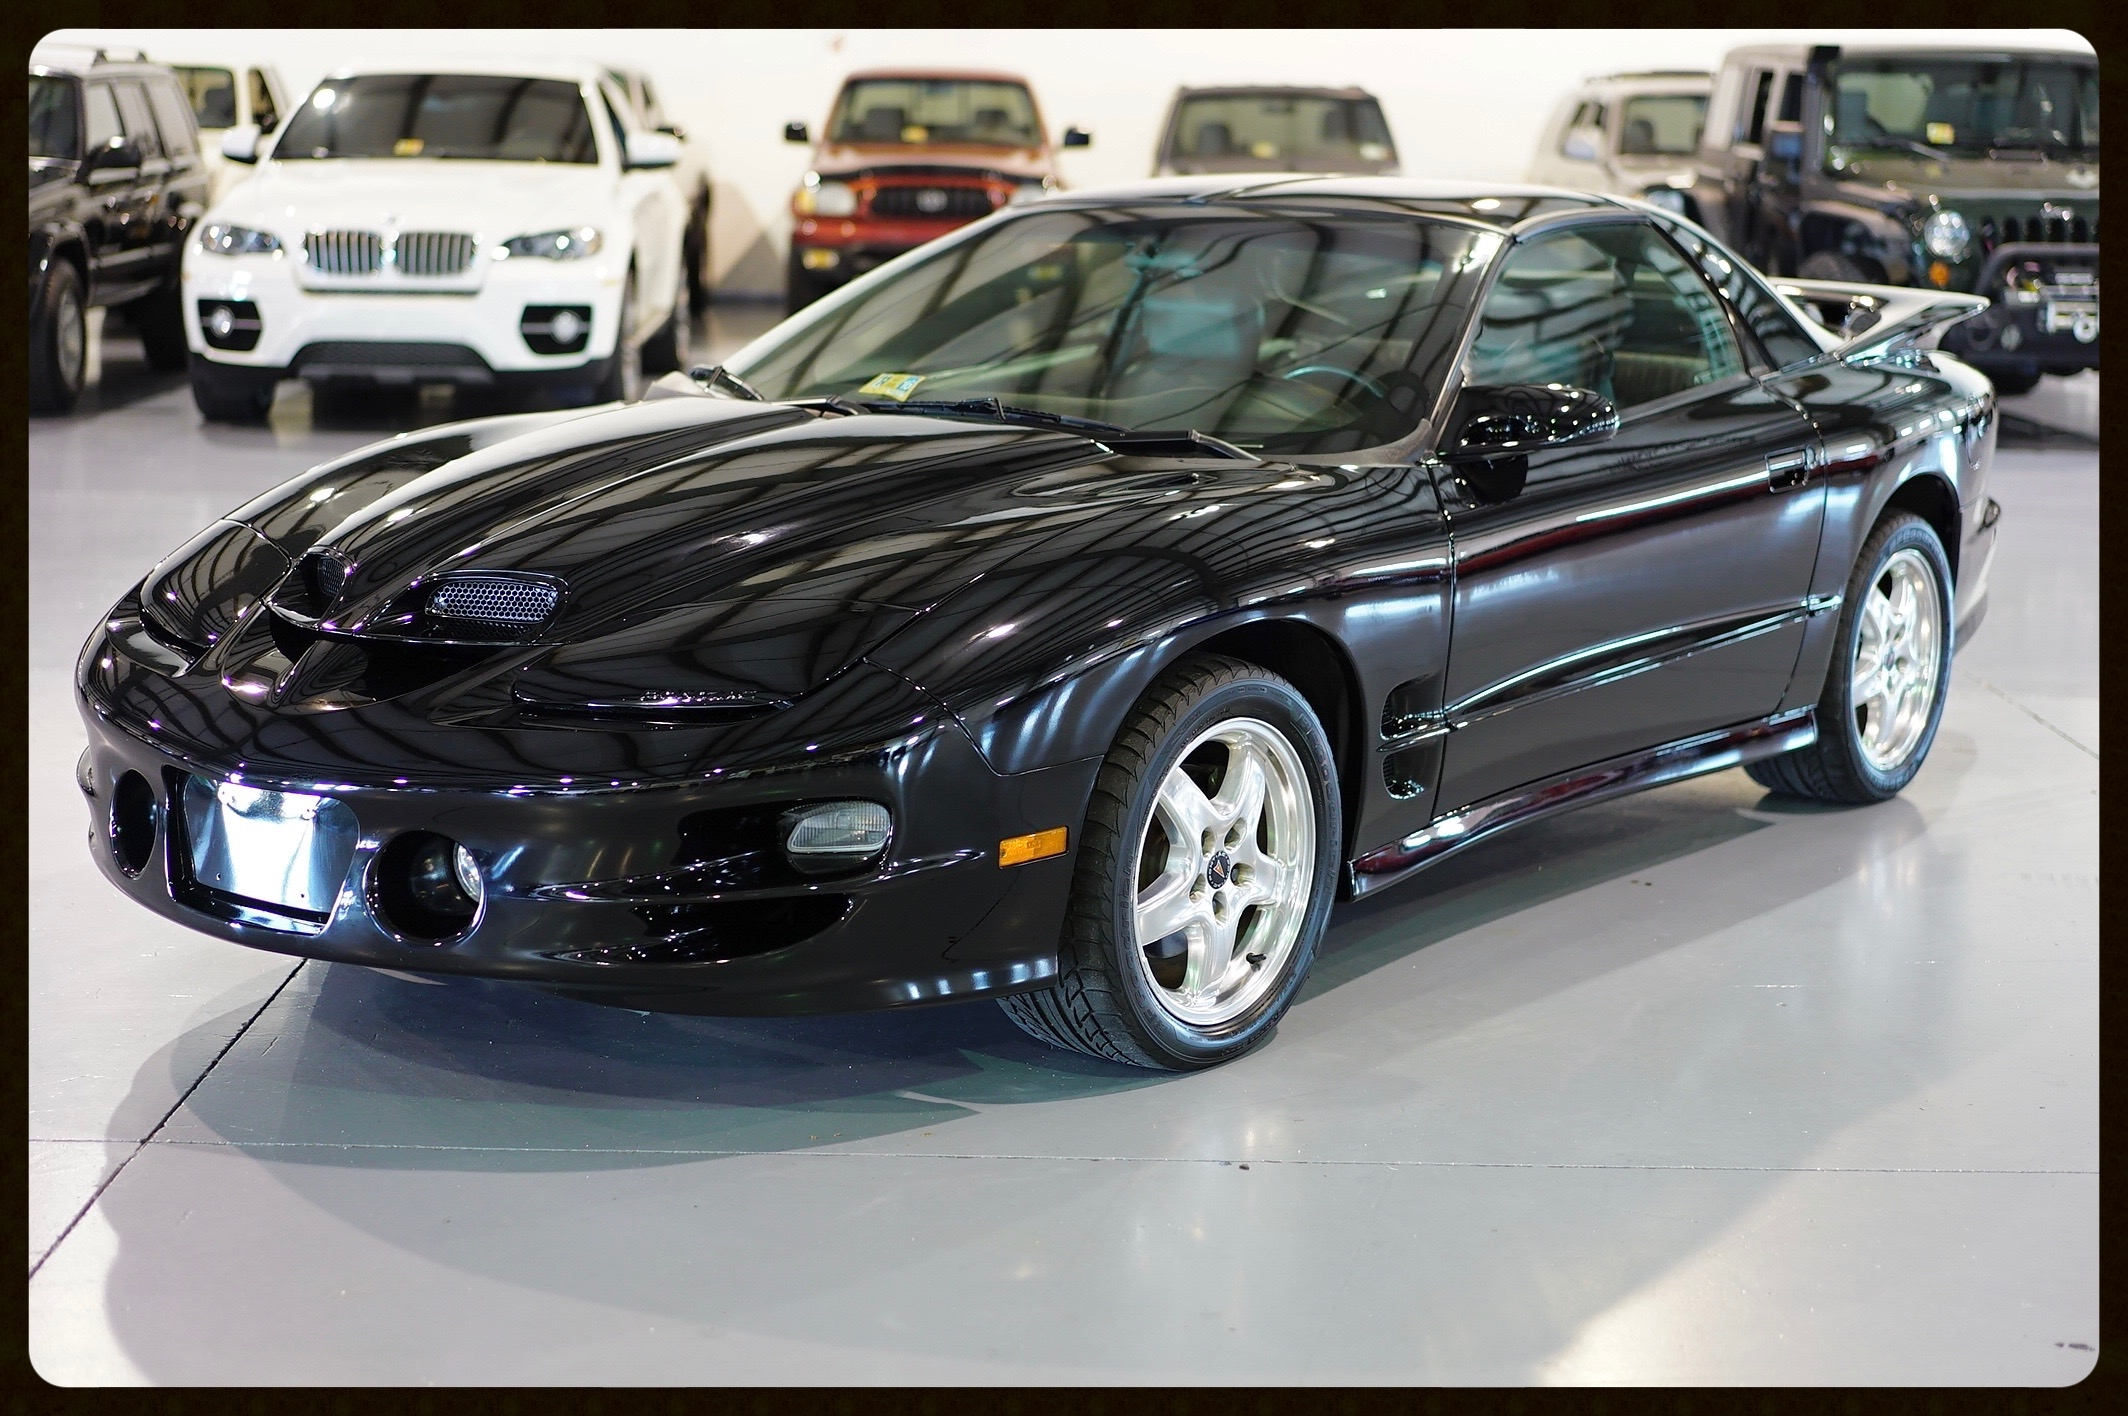 2002 Pontiac Trans Am WS6 Ram Air....Very Rare Car with ONLY 48K Miles...Black on Black with 6 Speed Tranny. This WS6 is absolutely Flawless